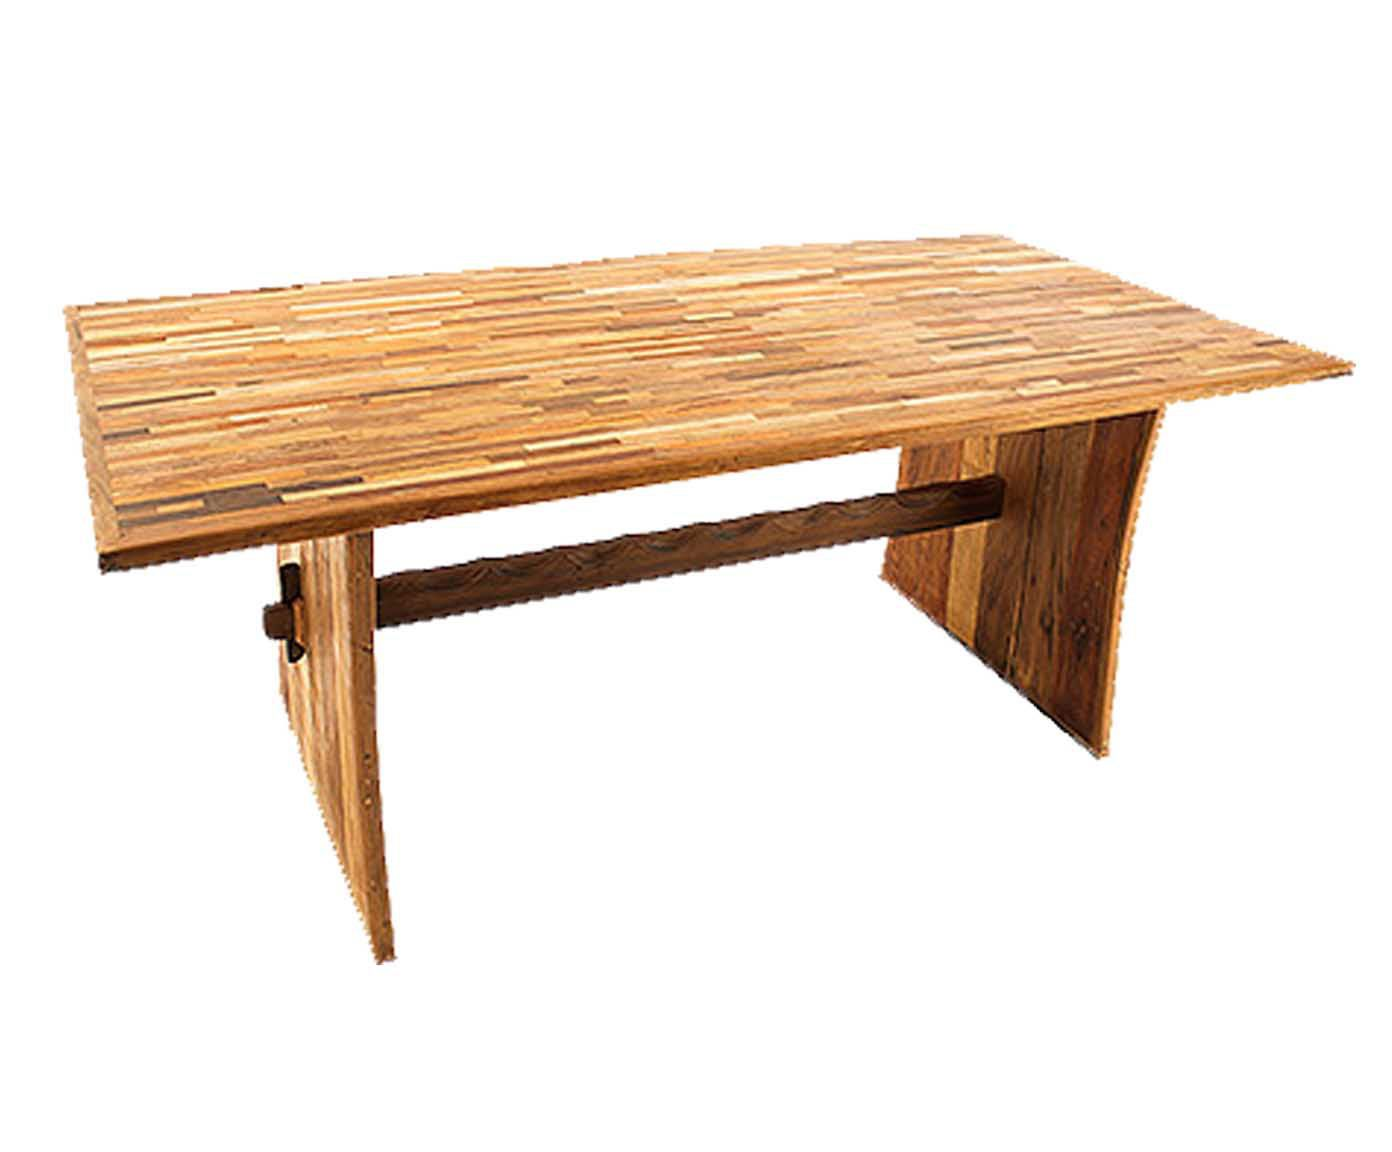 Mesa ouro rustic   Westwing.com.br